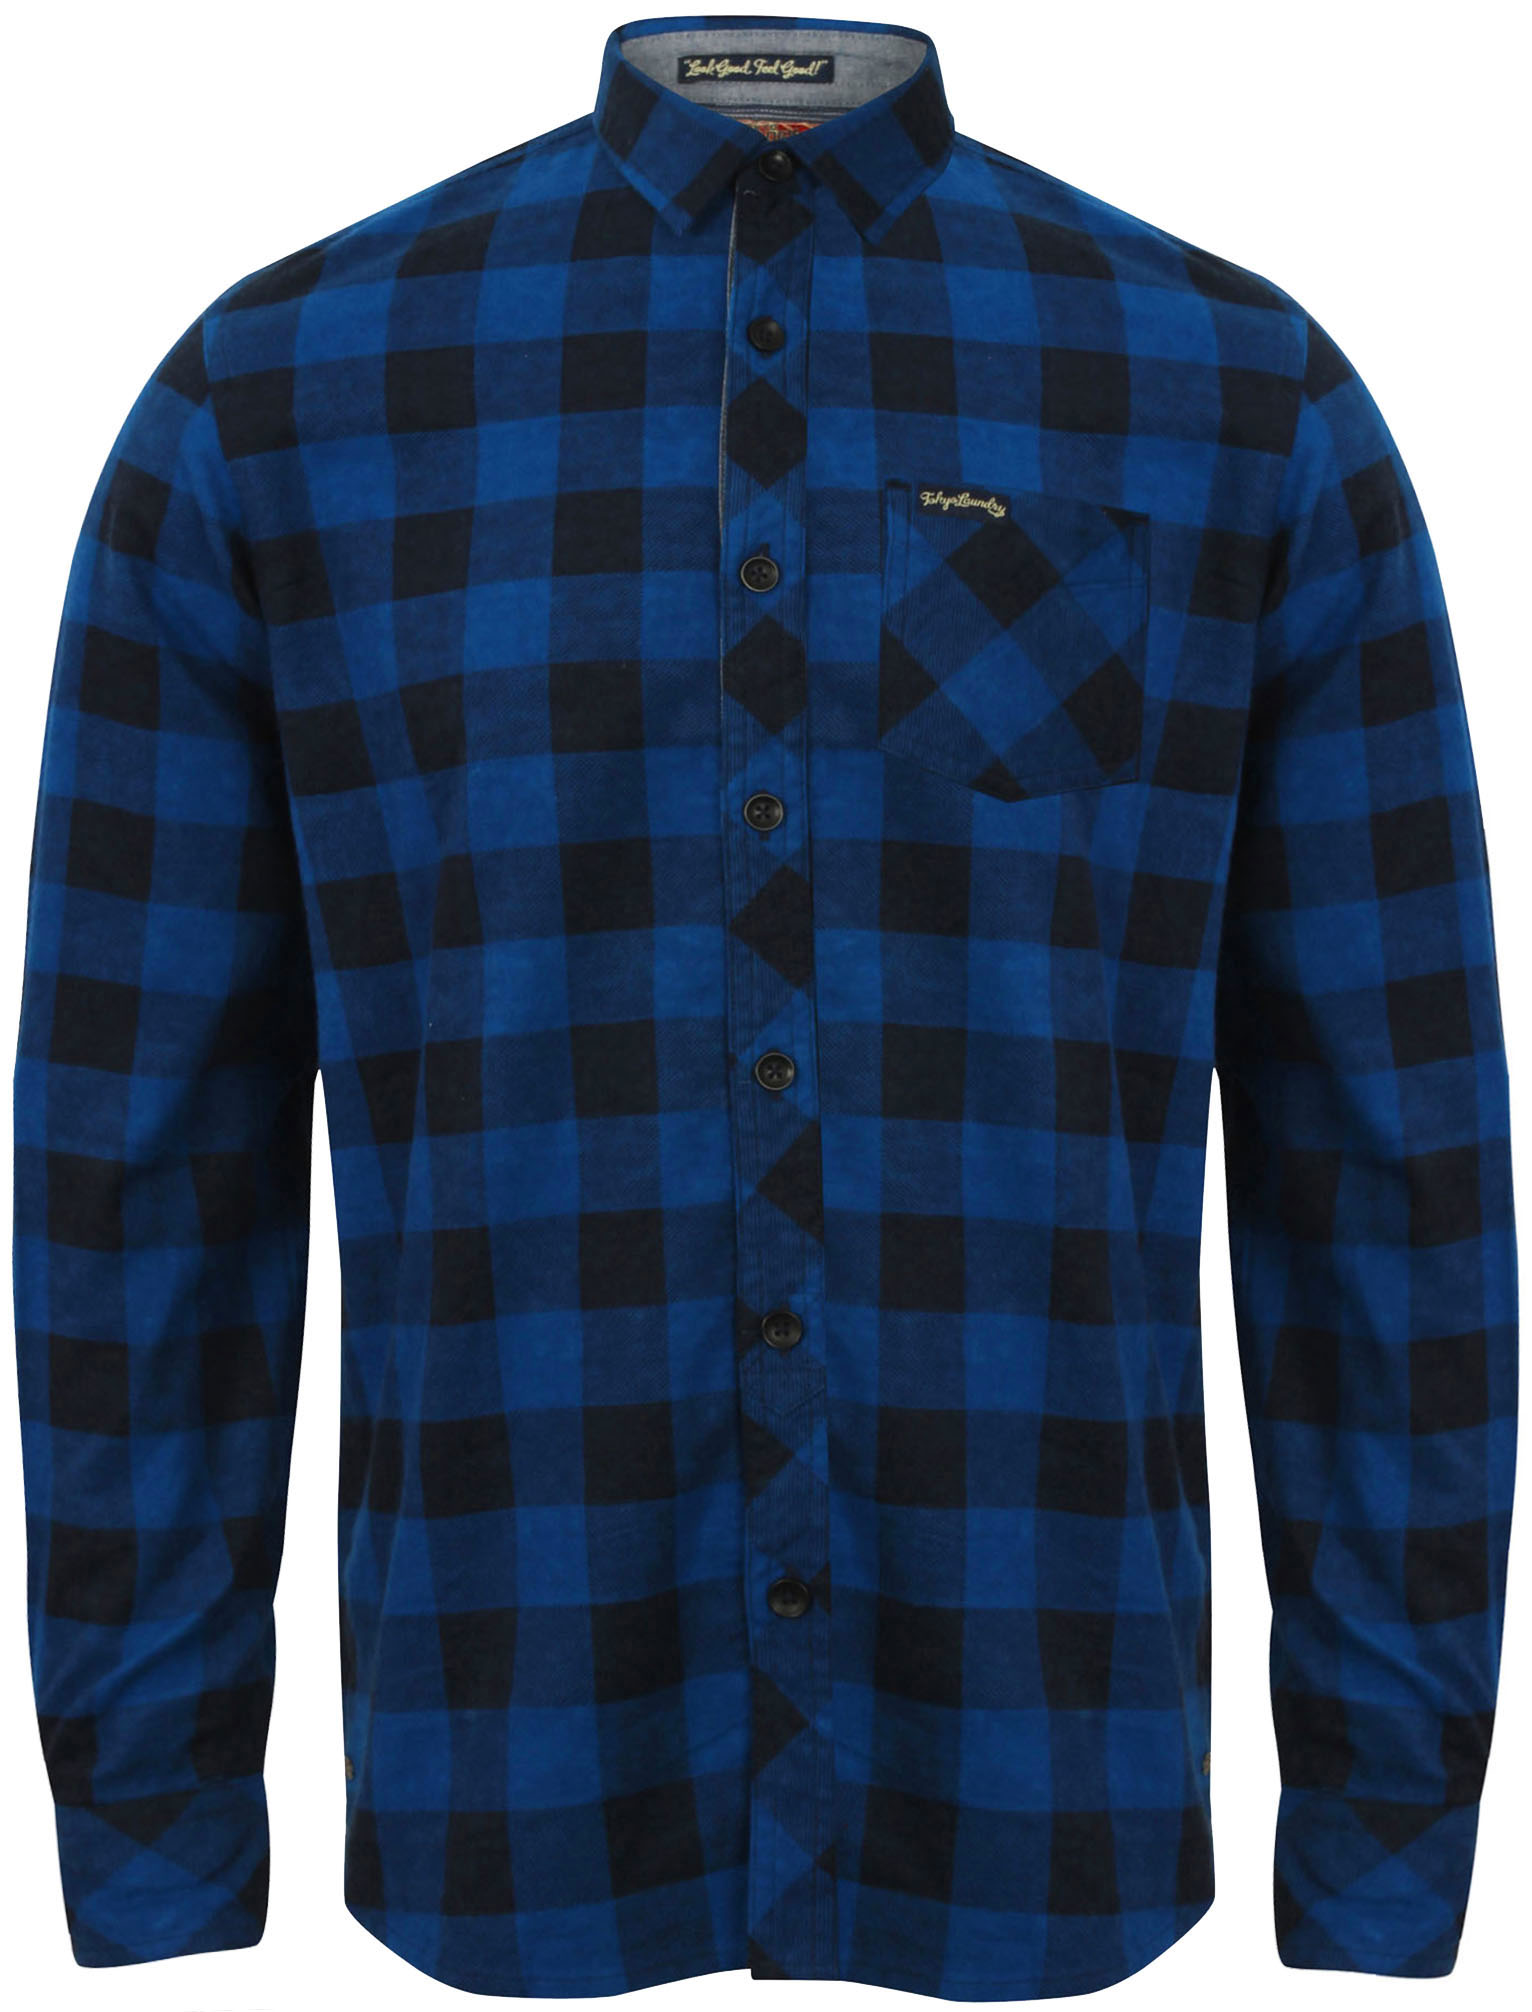 New-Mens-Tokyo-Laundry-Cotton-Long-Sleeve-Checked-Flannel-Shirt-Size-S-XL thumbnail 7